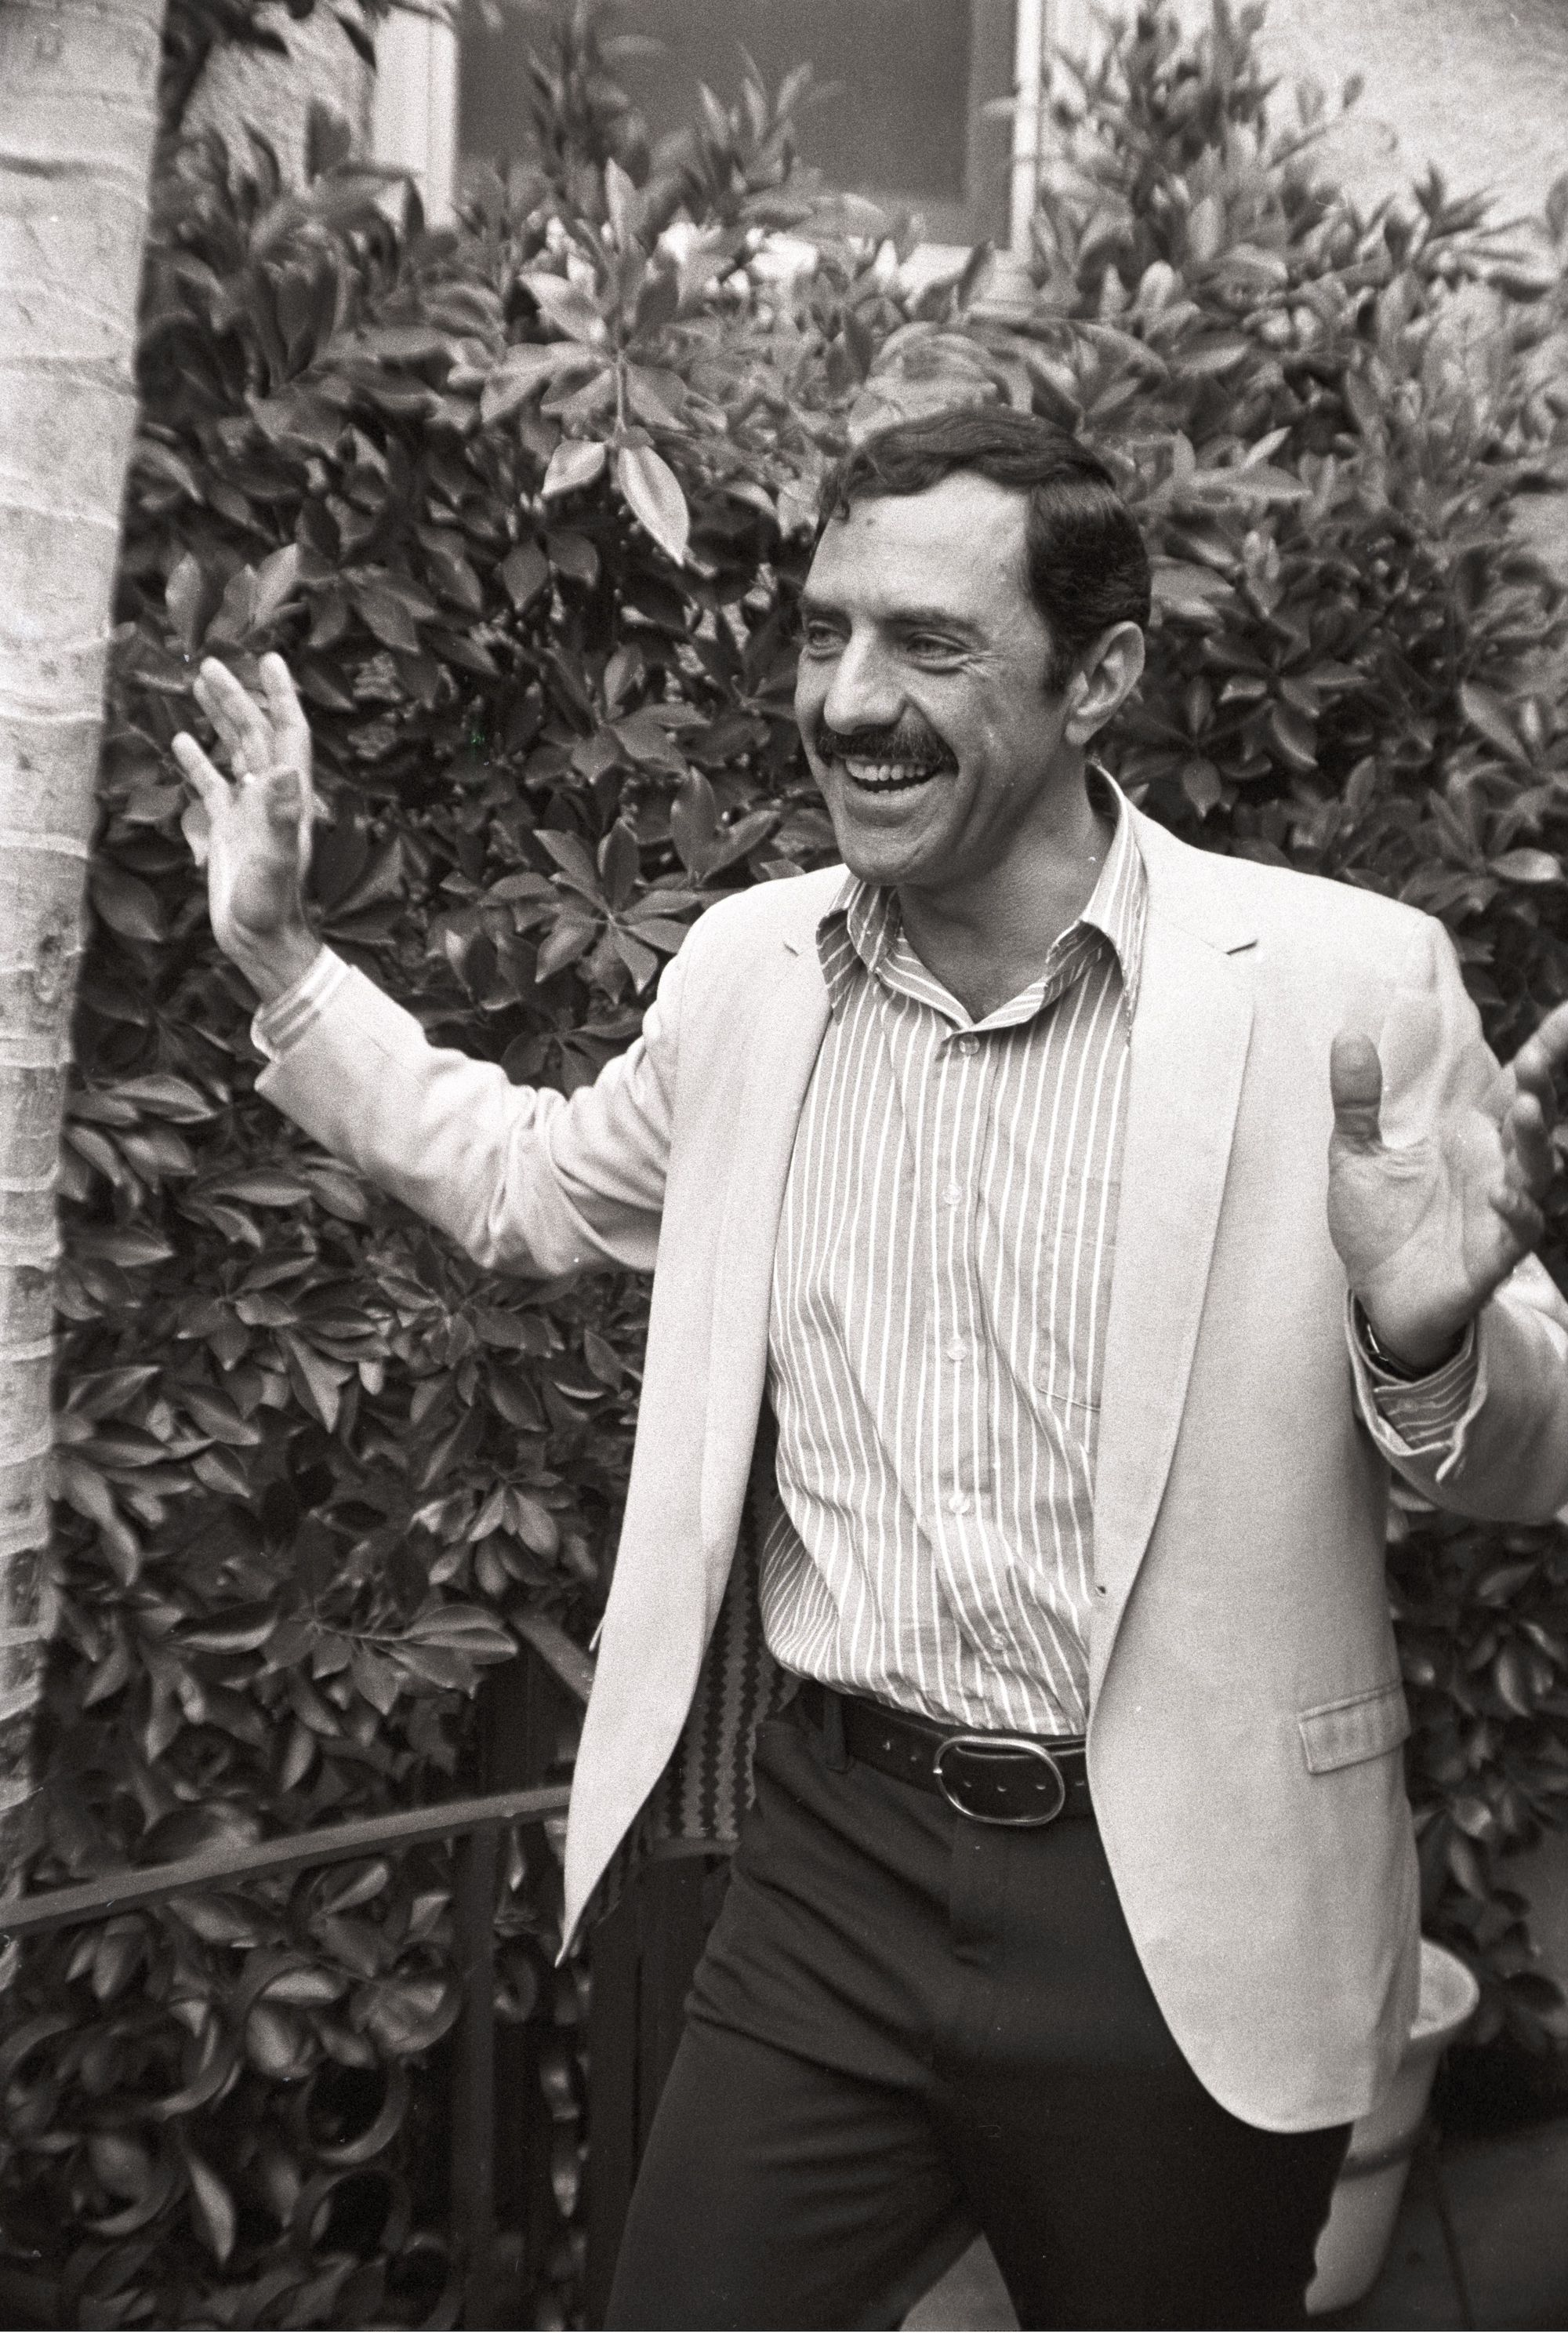 American author William Peter Blatty, Los Angeles. 28 Apr 1971